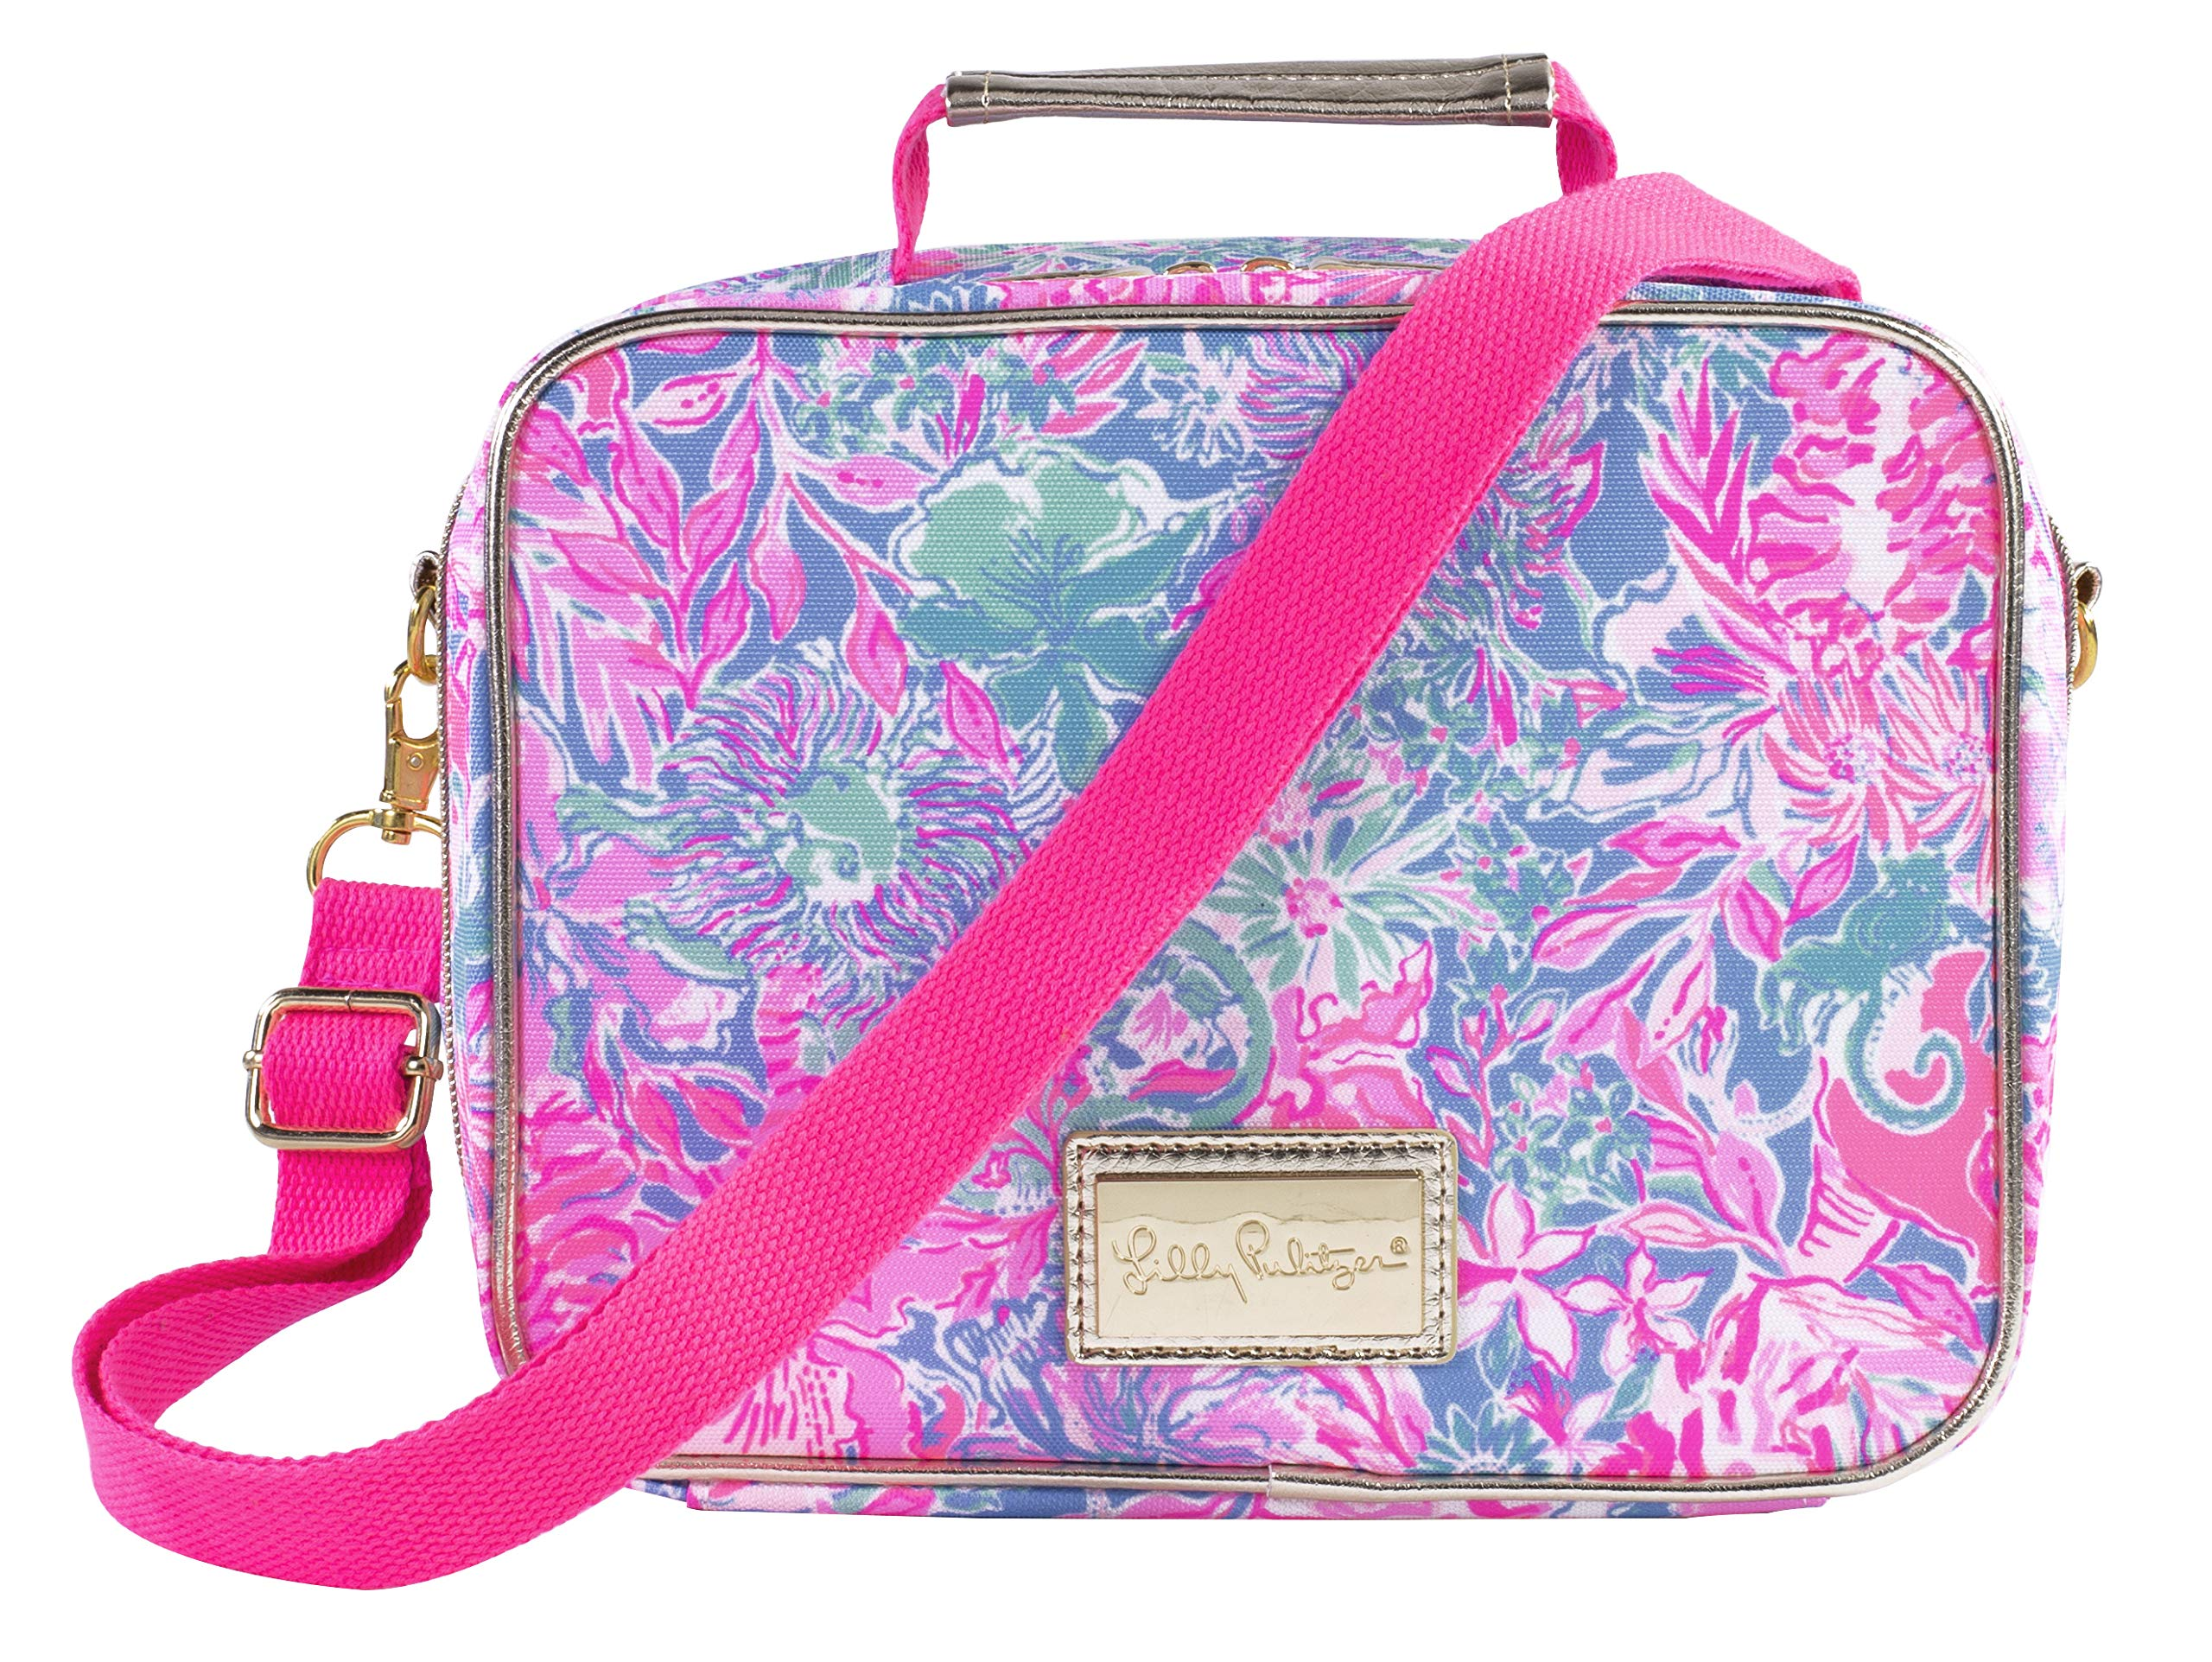 Lilly Pulitzer Thermal Insulated Lunch Bag with Adjustable/Removable Shoulder Strap, Viva La Lilly by Lilly Pulitzer